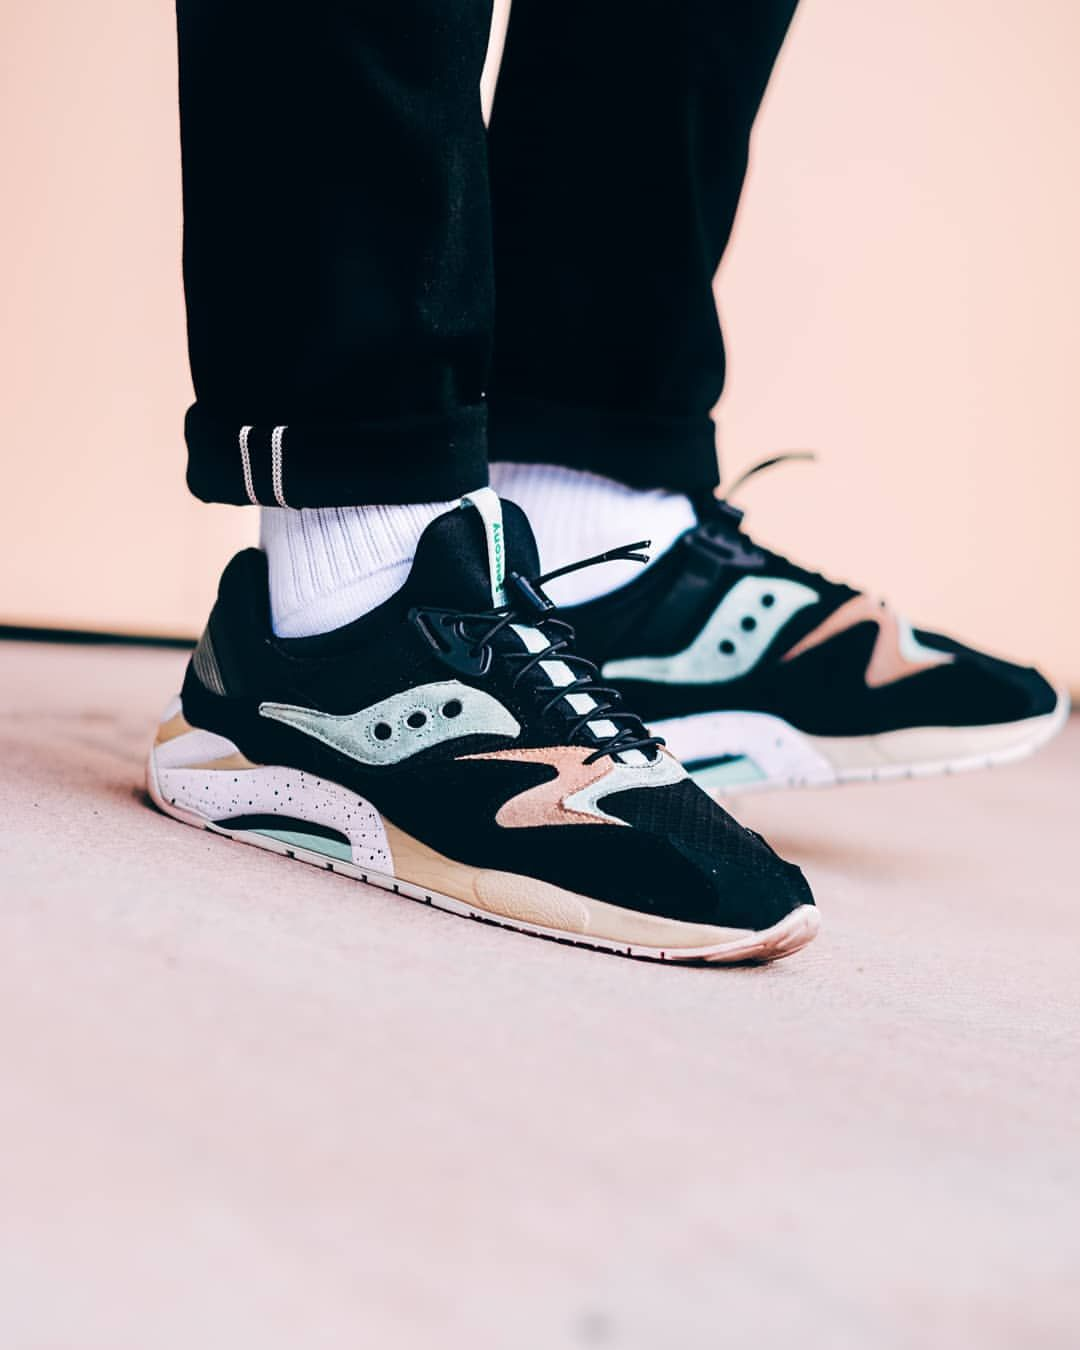 sneaker freaker x saucony grid 9000 bushwhacker now available